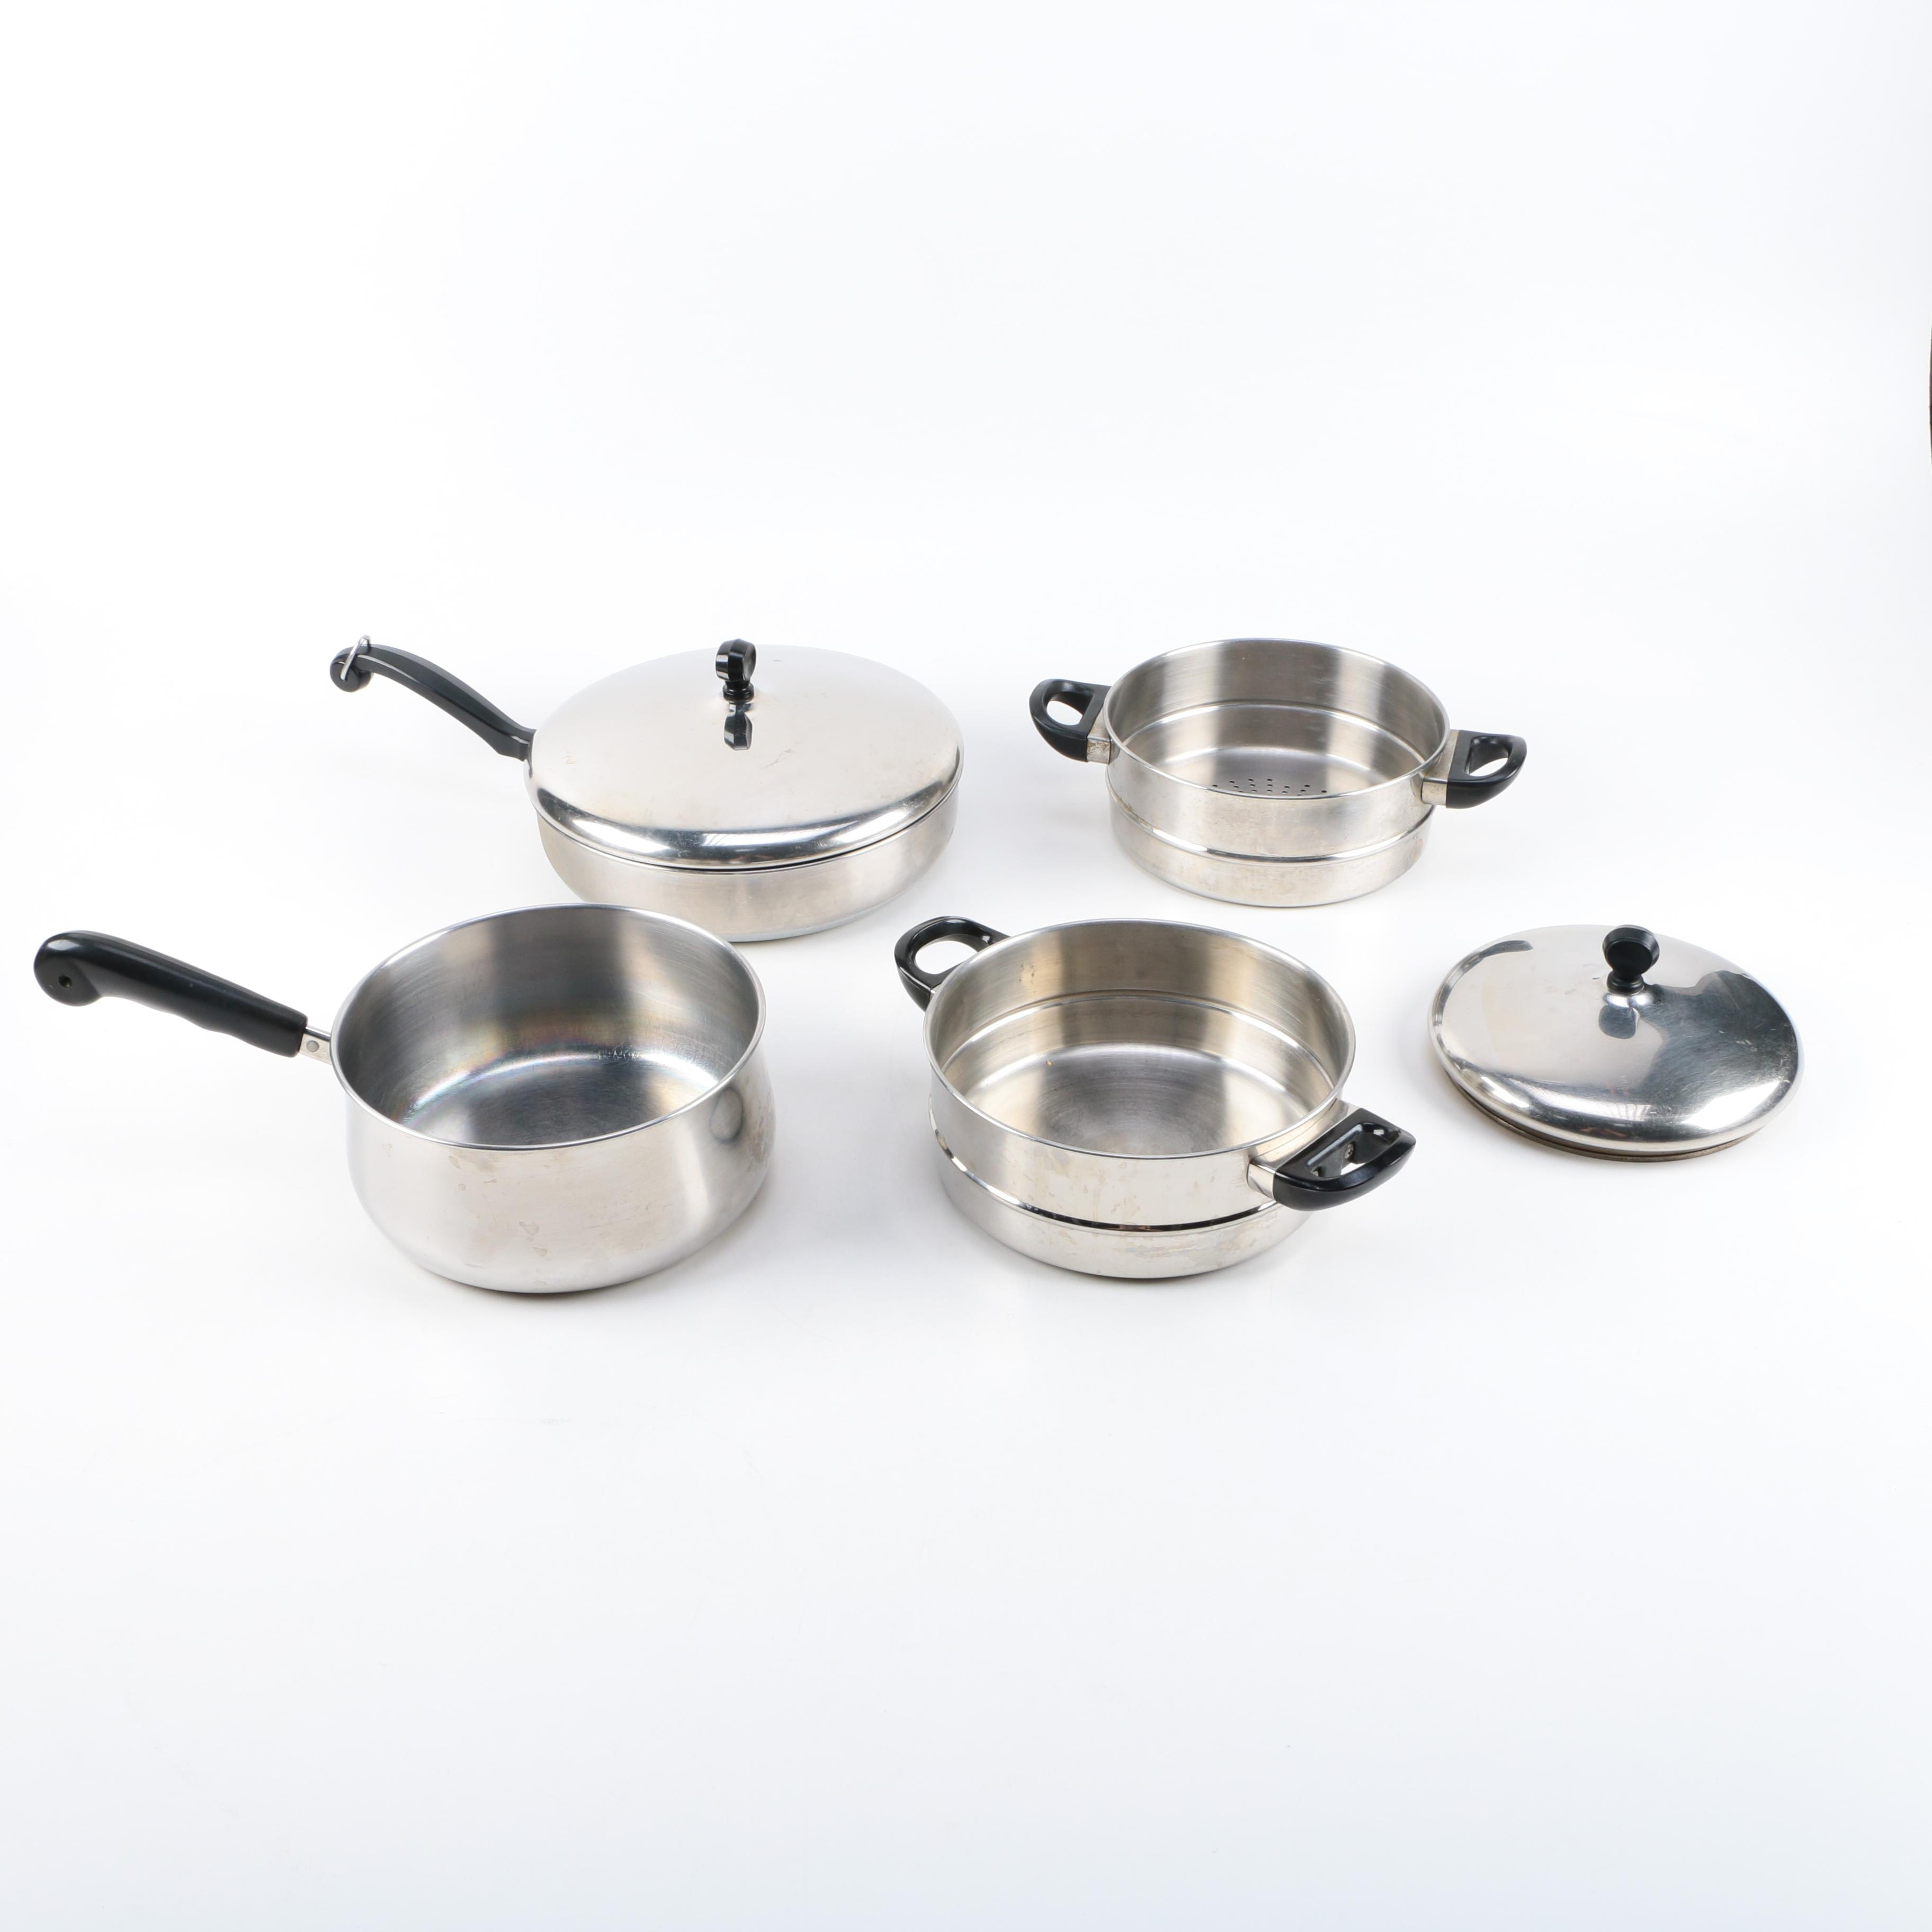 Stainless Steel Cookware Featuring Farberware and K.D Gourmet